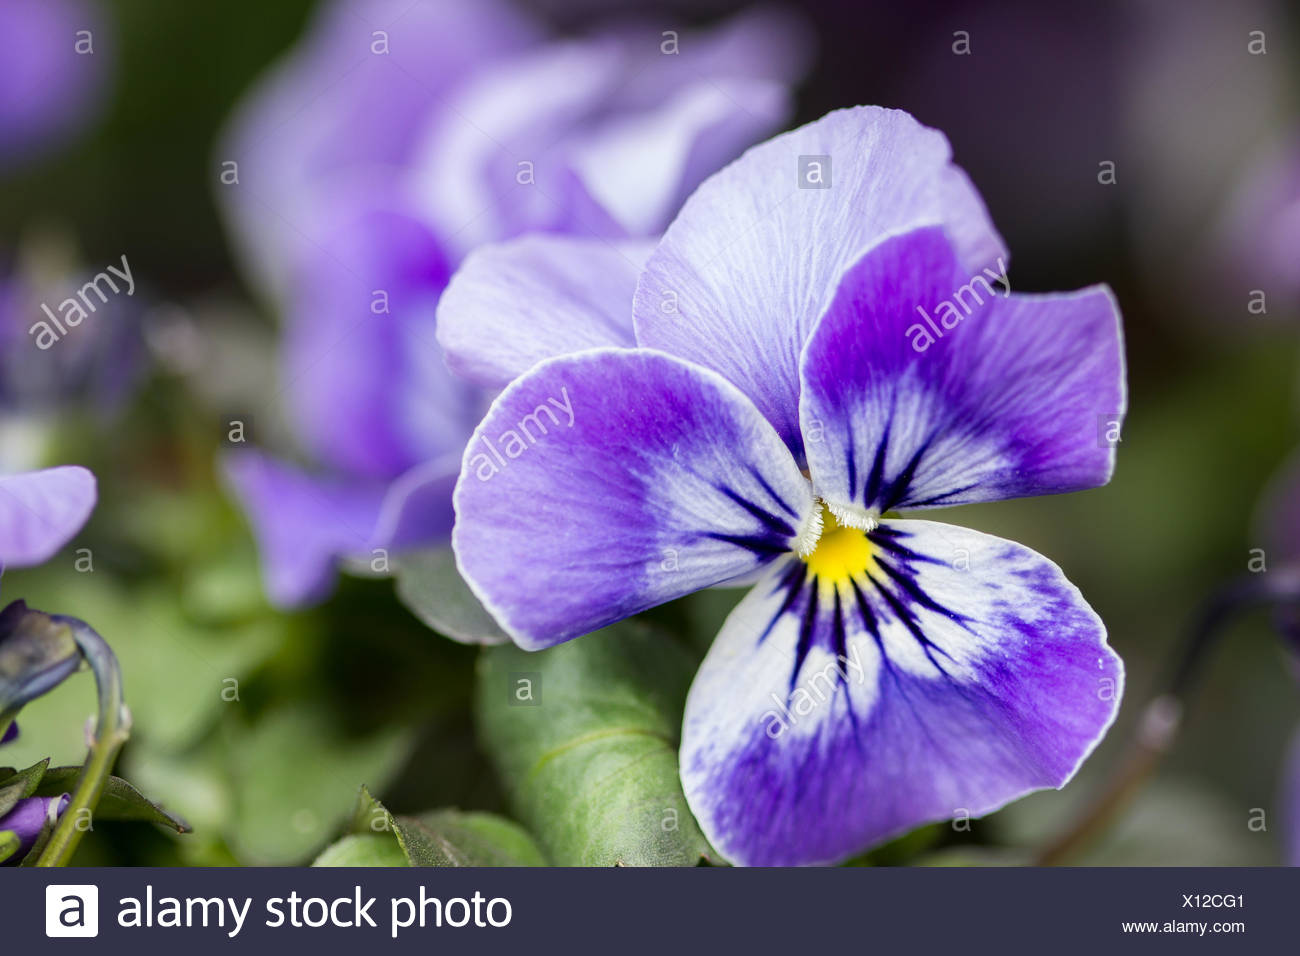 pansy - Stock Image